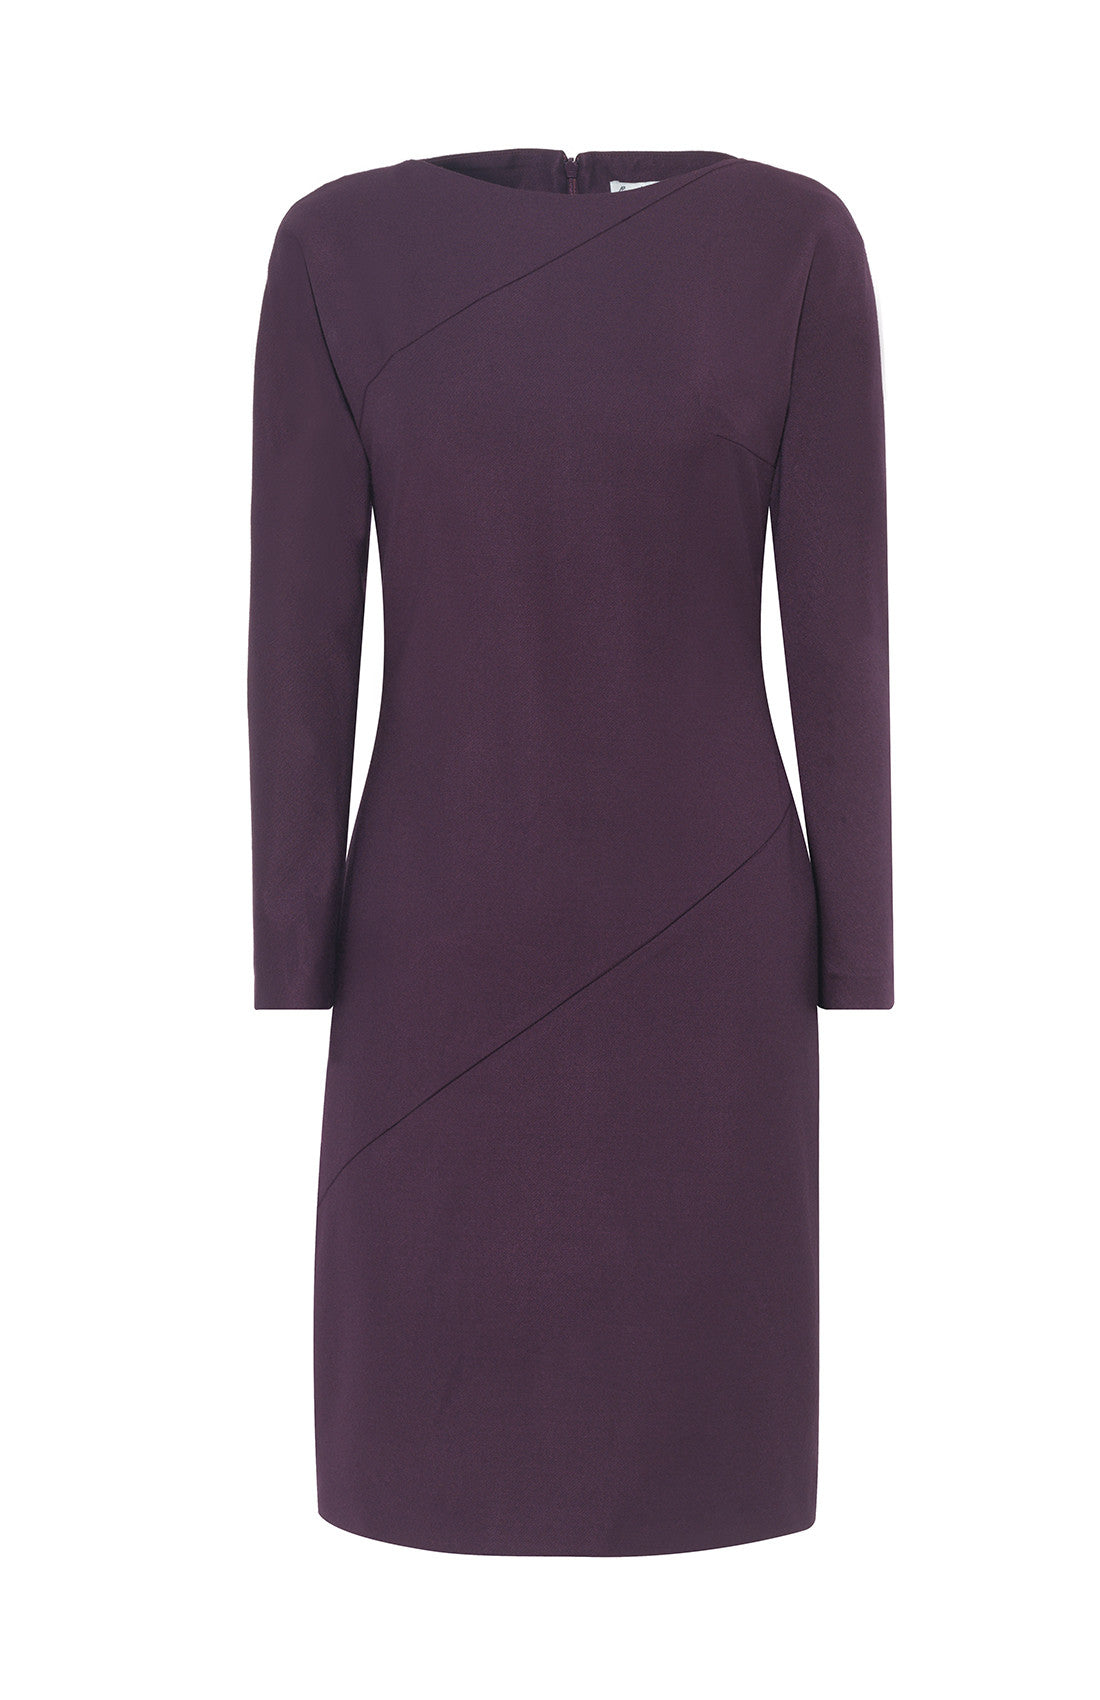 Purple flattering slim-fitting long sleeve knee length office dress for work